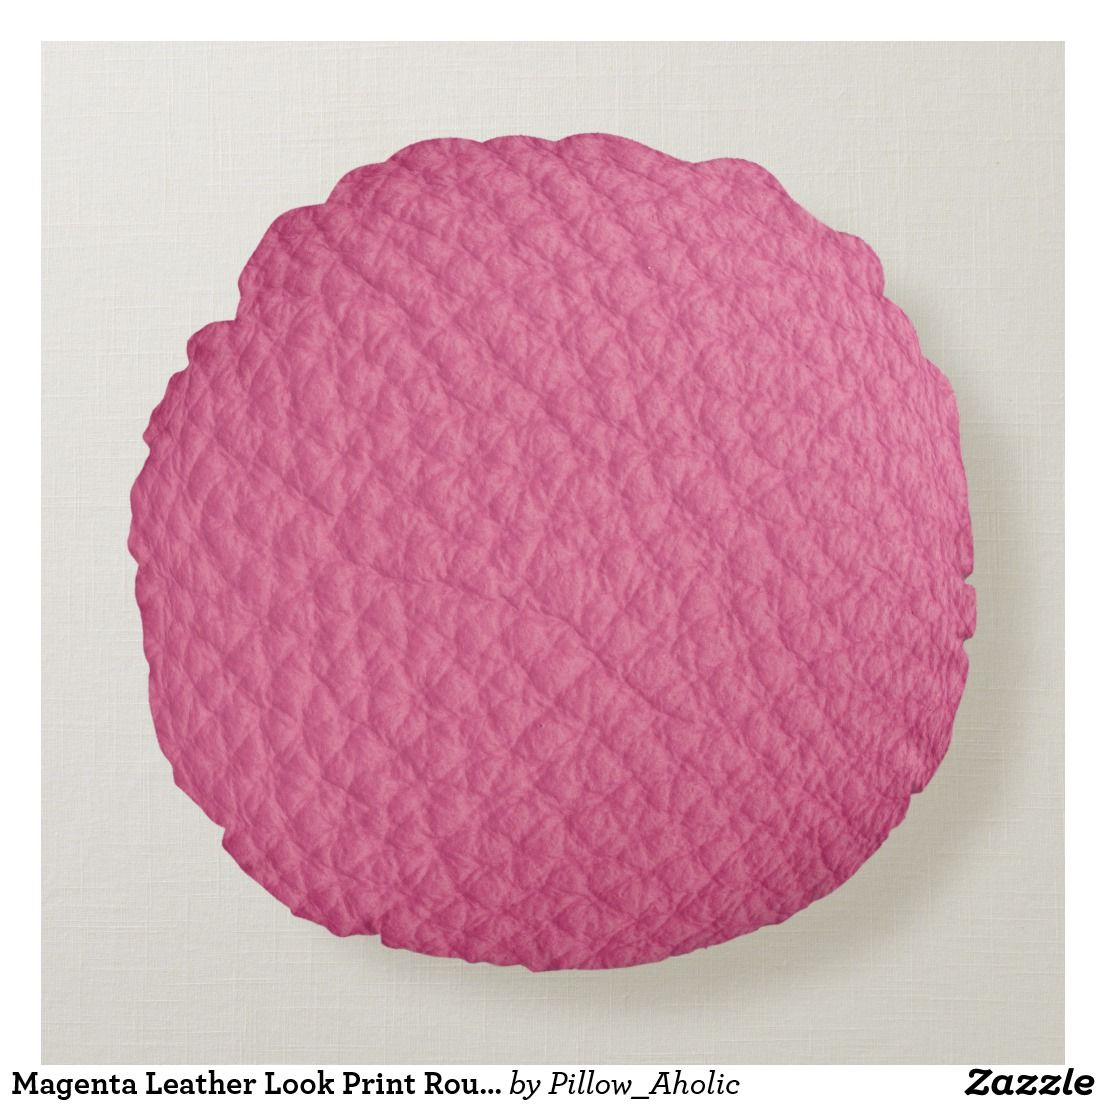 Magenta Leather Look Print Round Pillow | Zazzle.com